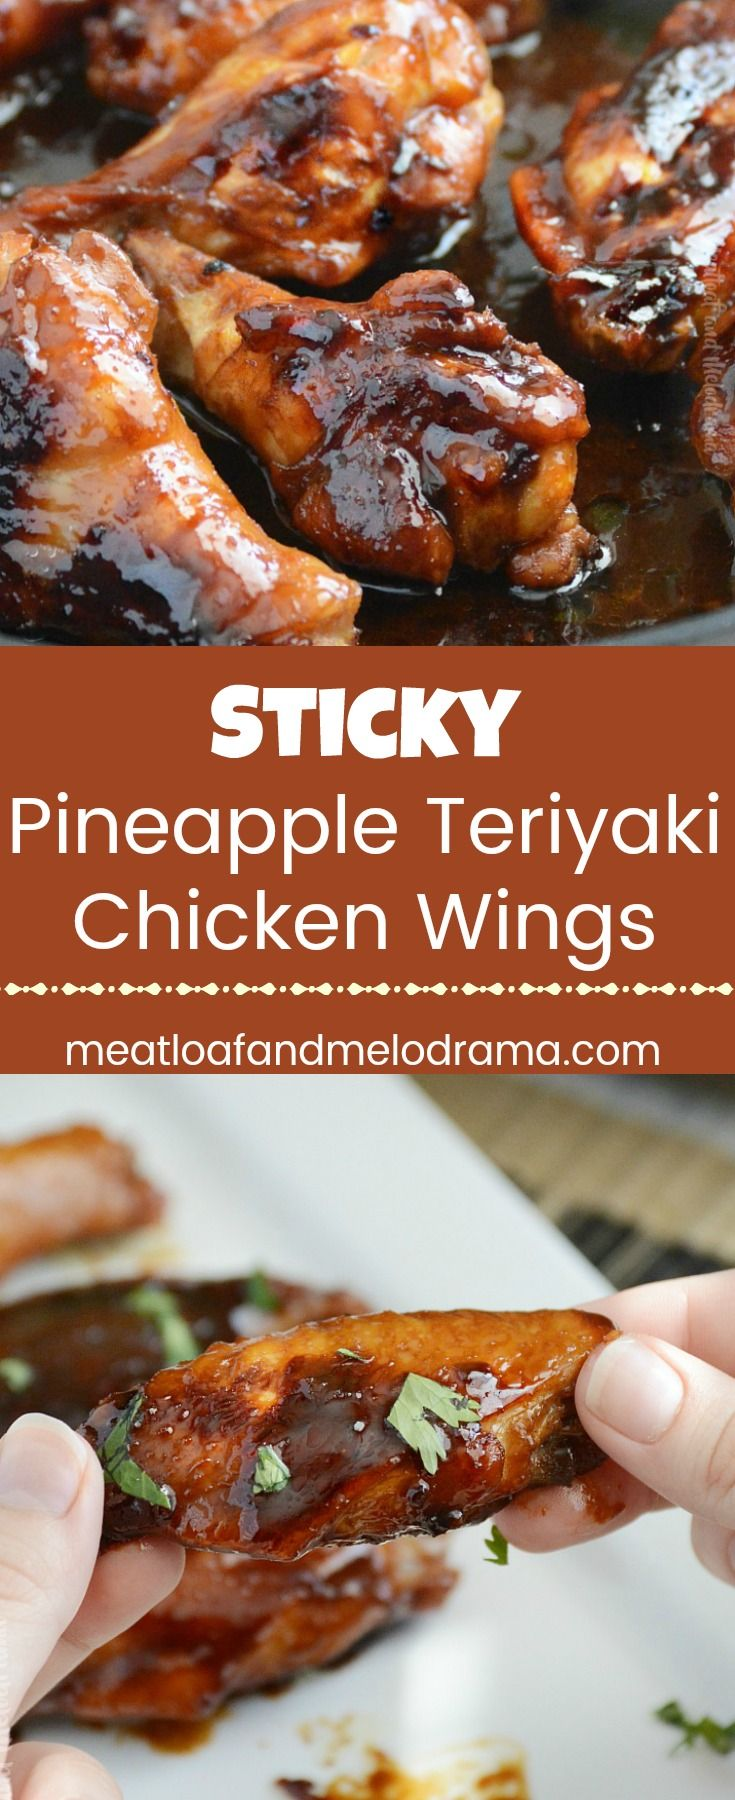 Sticky Pineapple Teriyaki Chicken Wings - Chicken wings marinated in a delicious sweet & savory pineapple teriyaki sauce made with soy, ginger, garlic, pineapple and beer! Perfect for game day parties or an easy dinner! from Meatloaf and Melodrama #gamedayfood #partyfood